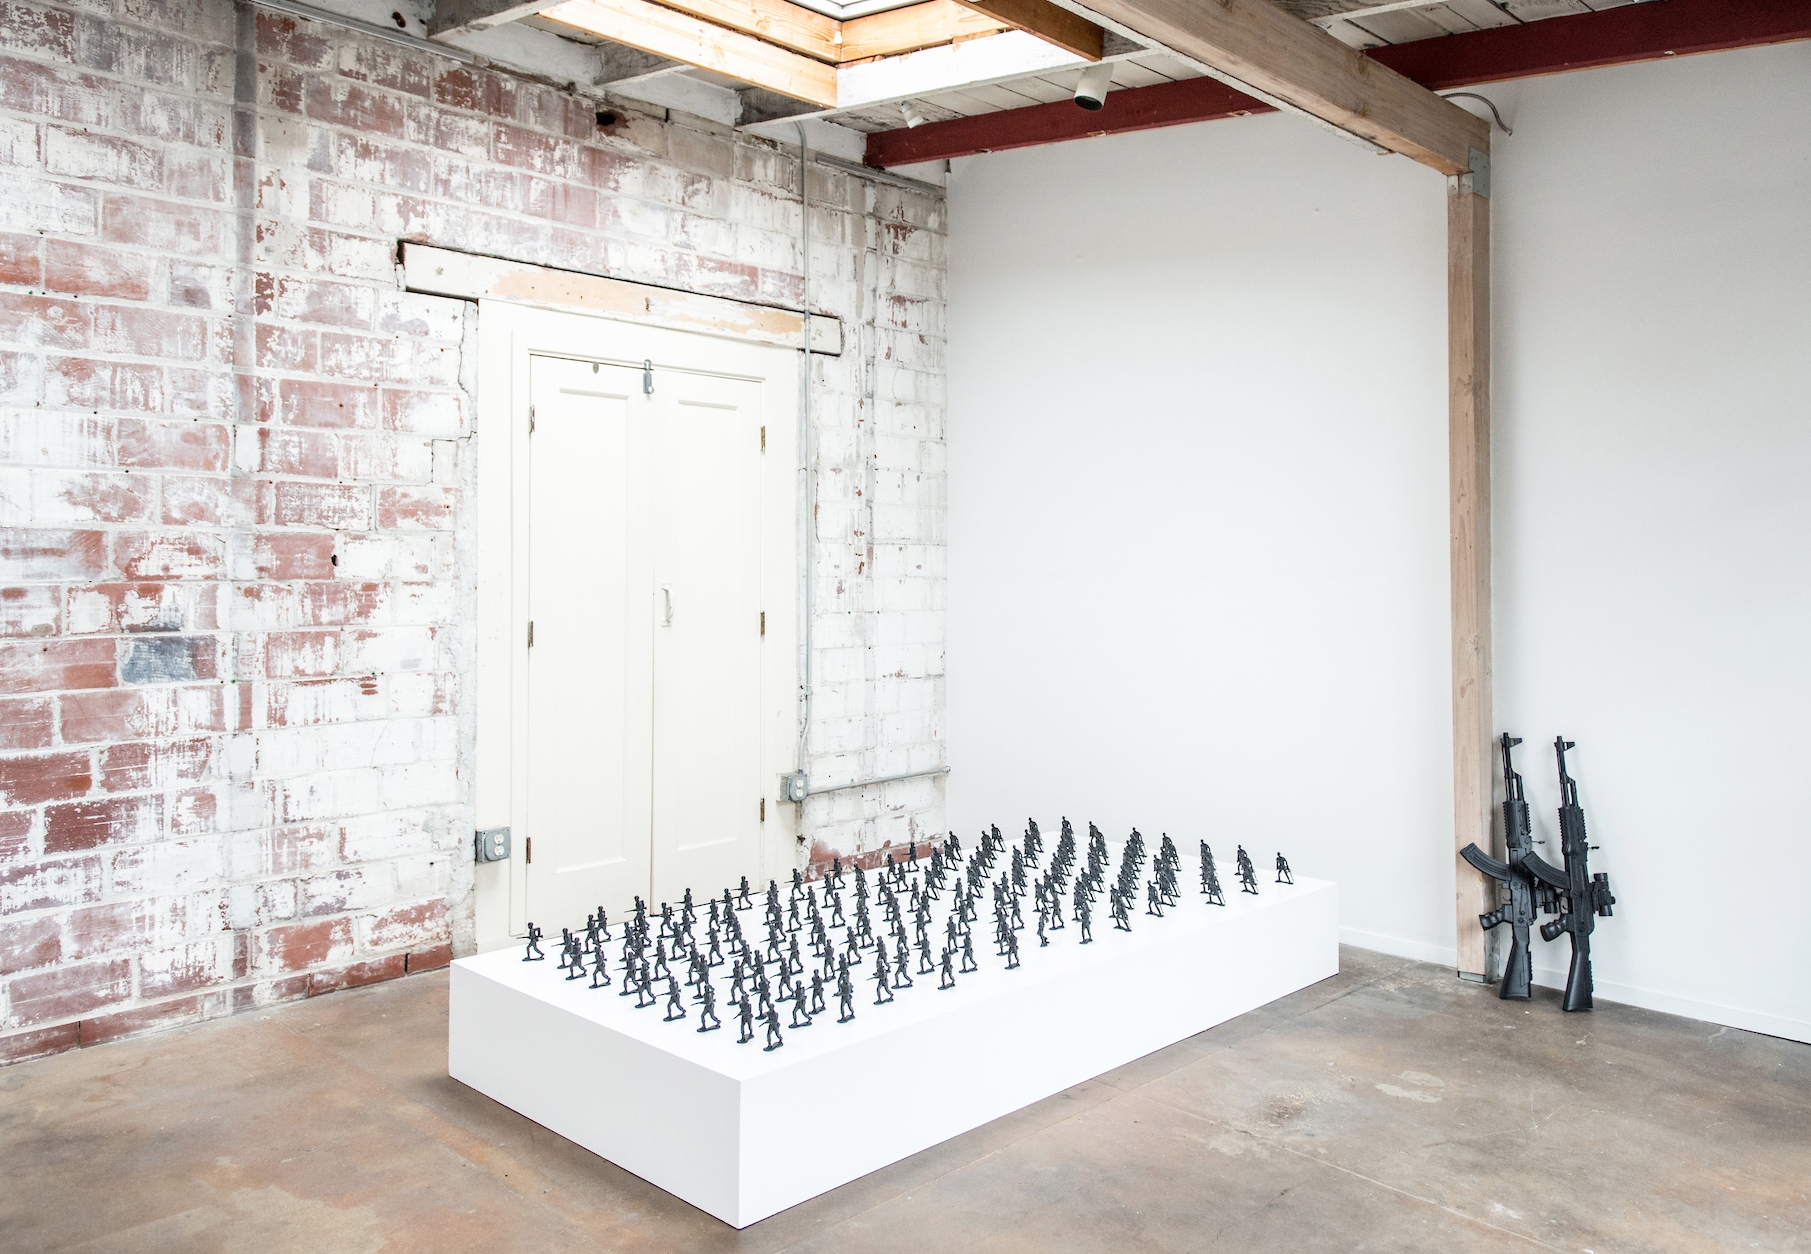 "Installation View. Wooden platform, toy soldiers (4""), toy AK-47 assault rifle (2½ ft), aerosol paint."